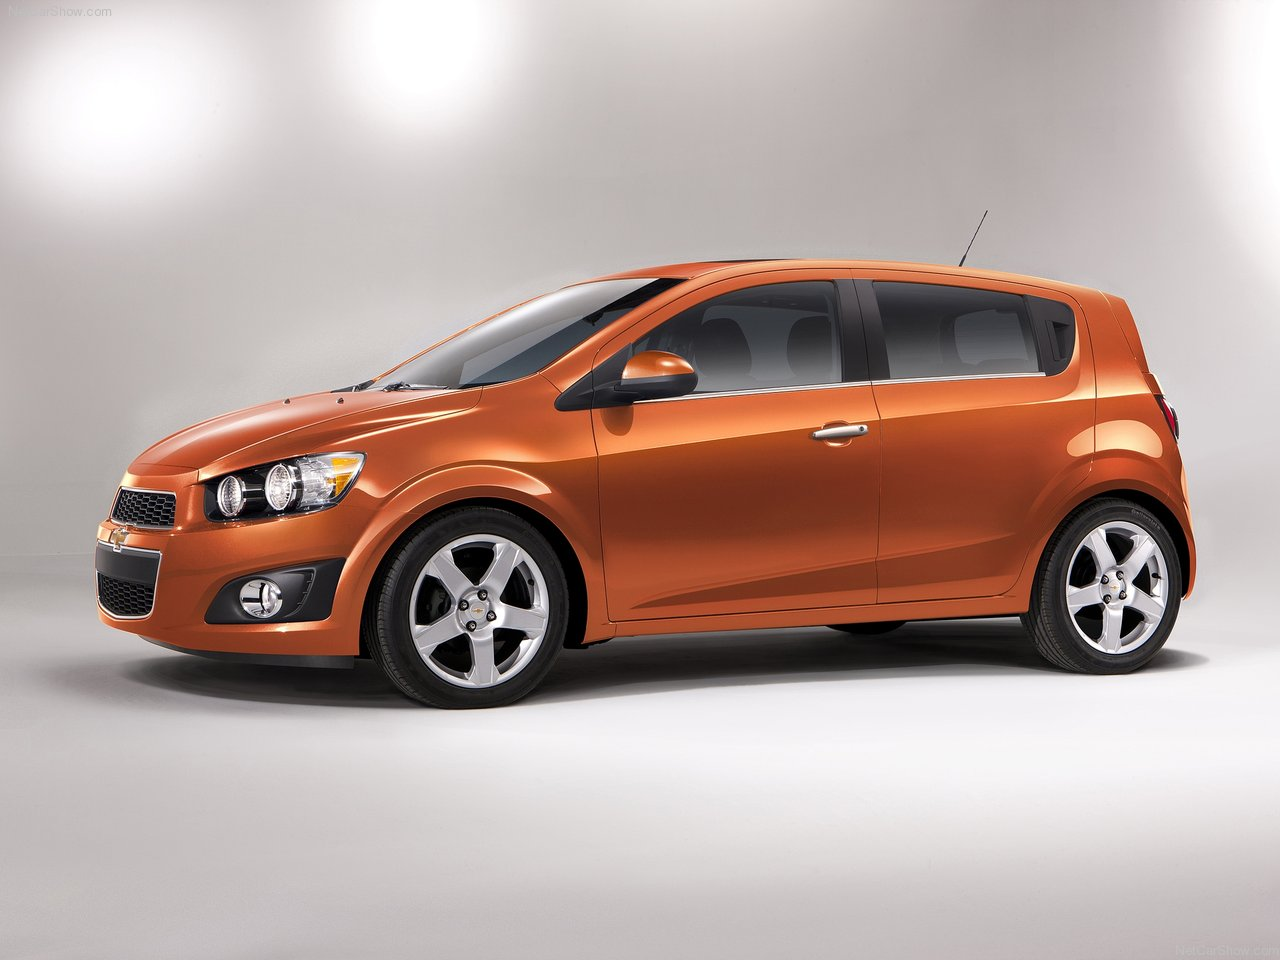 Chevrolet Sonic 2012 New Small Car